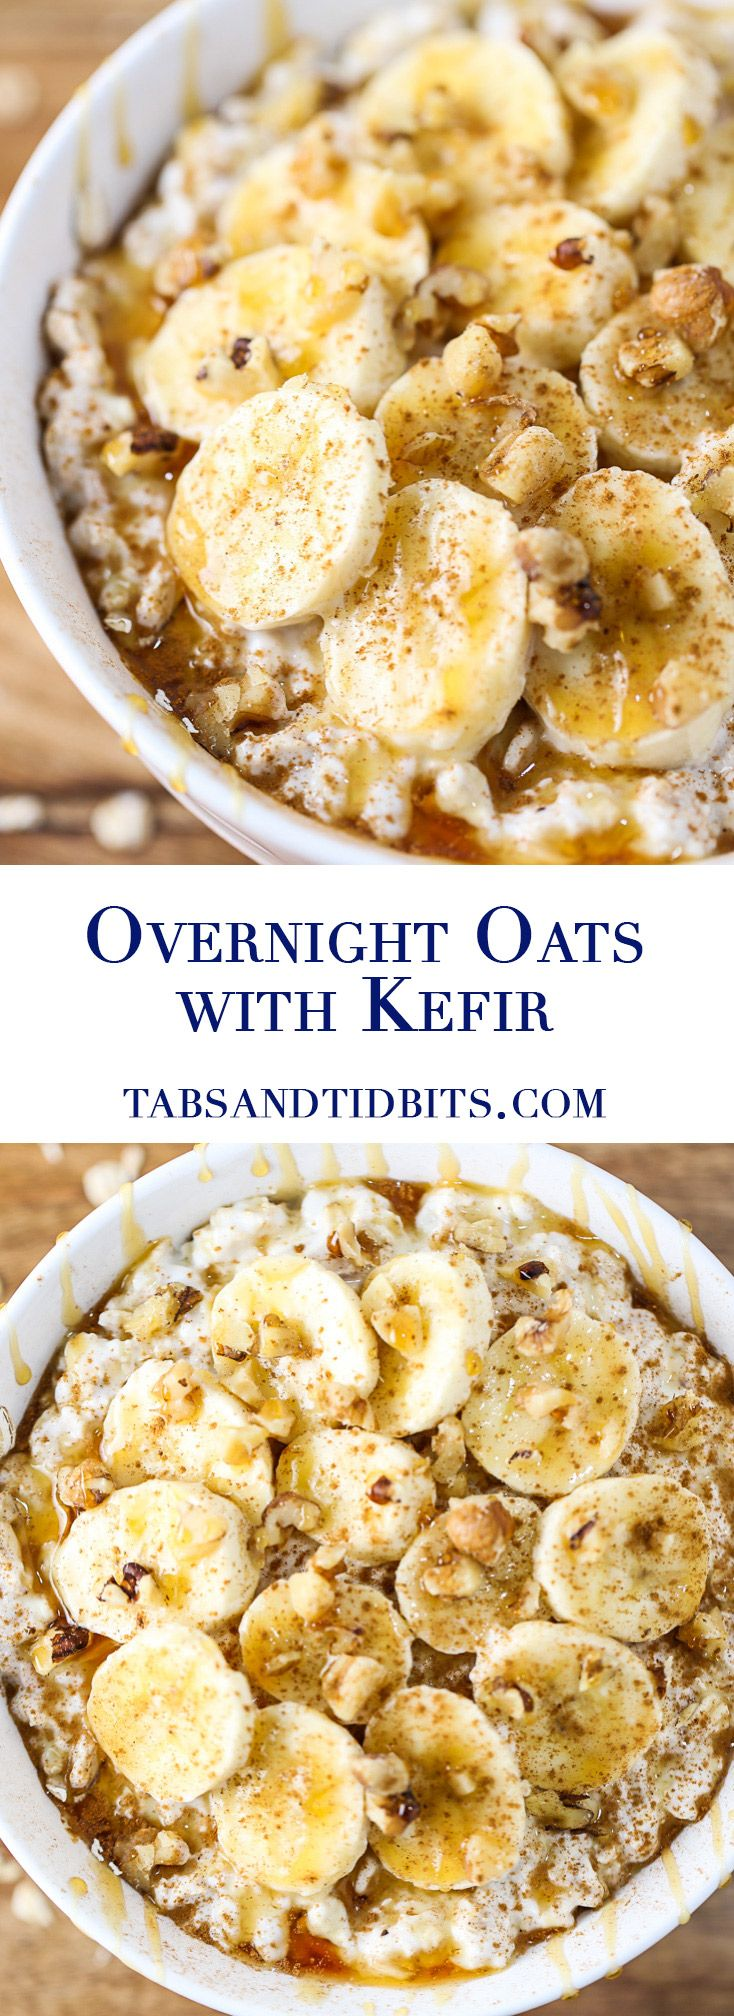 These overnight oats with kefir provide a filling breakfast with the added benefits of kefir and sweetened naturally with fruit!